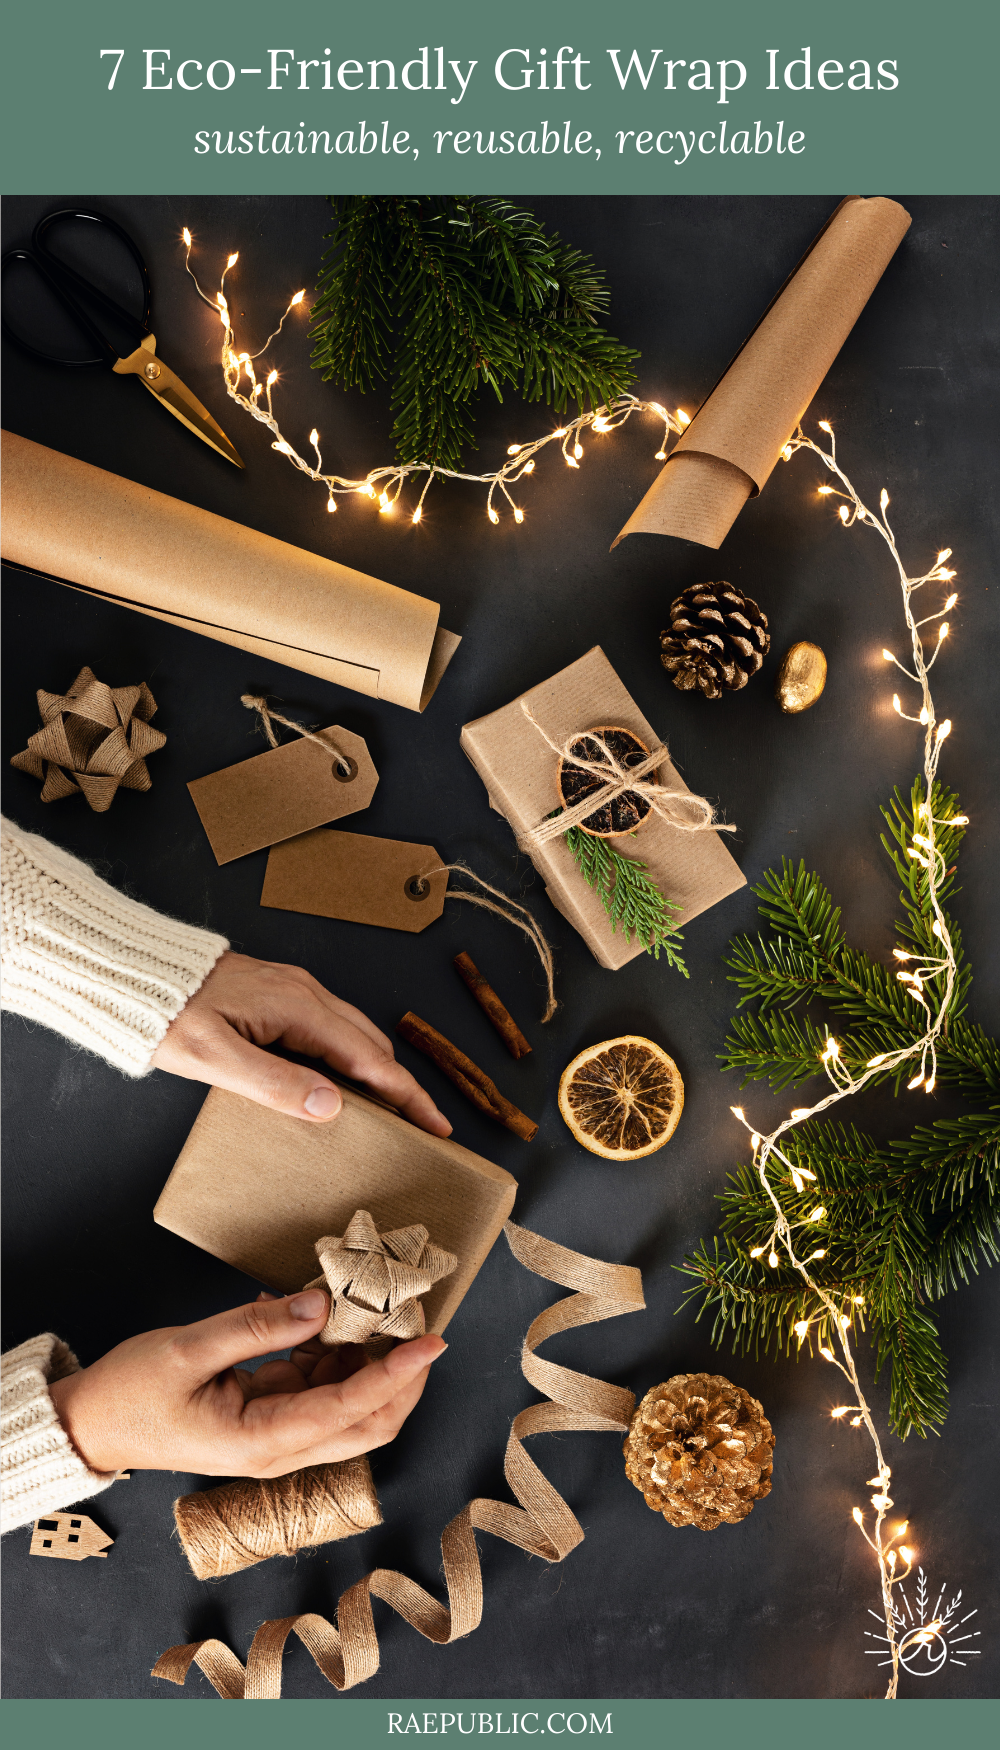 Wrapping paper, tissue paper, ribbon, bows, and gift bags are not recyclable. There are plenty of great sustainable, reusable, and recyclable wrapping paper options that are inexpensive and just gorgeous.